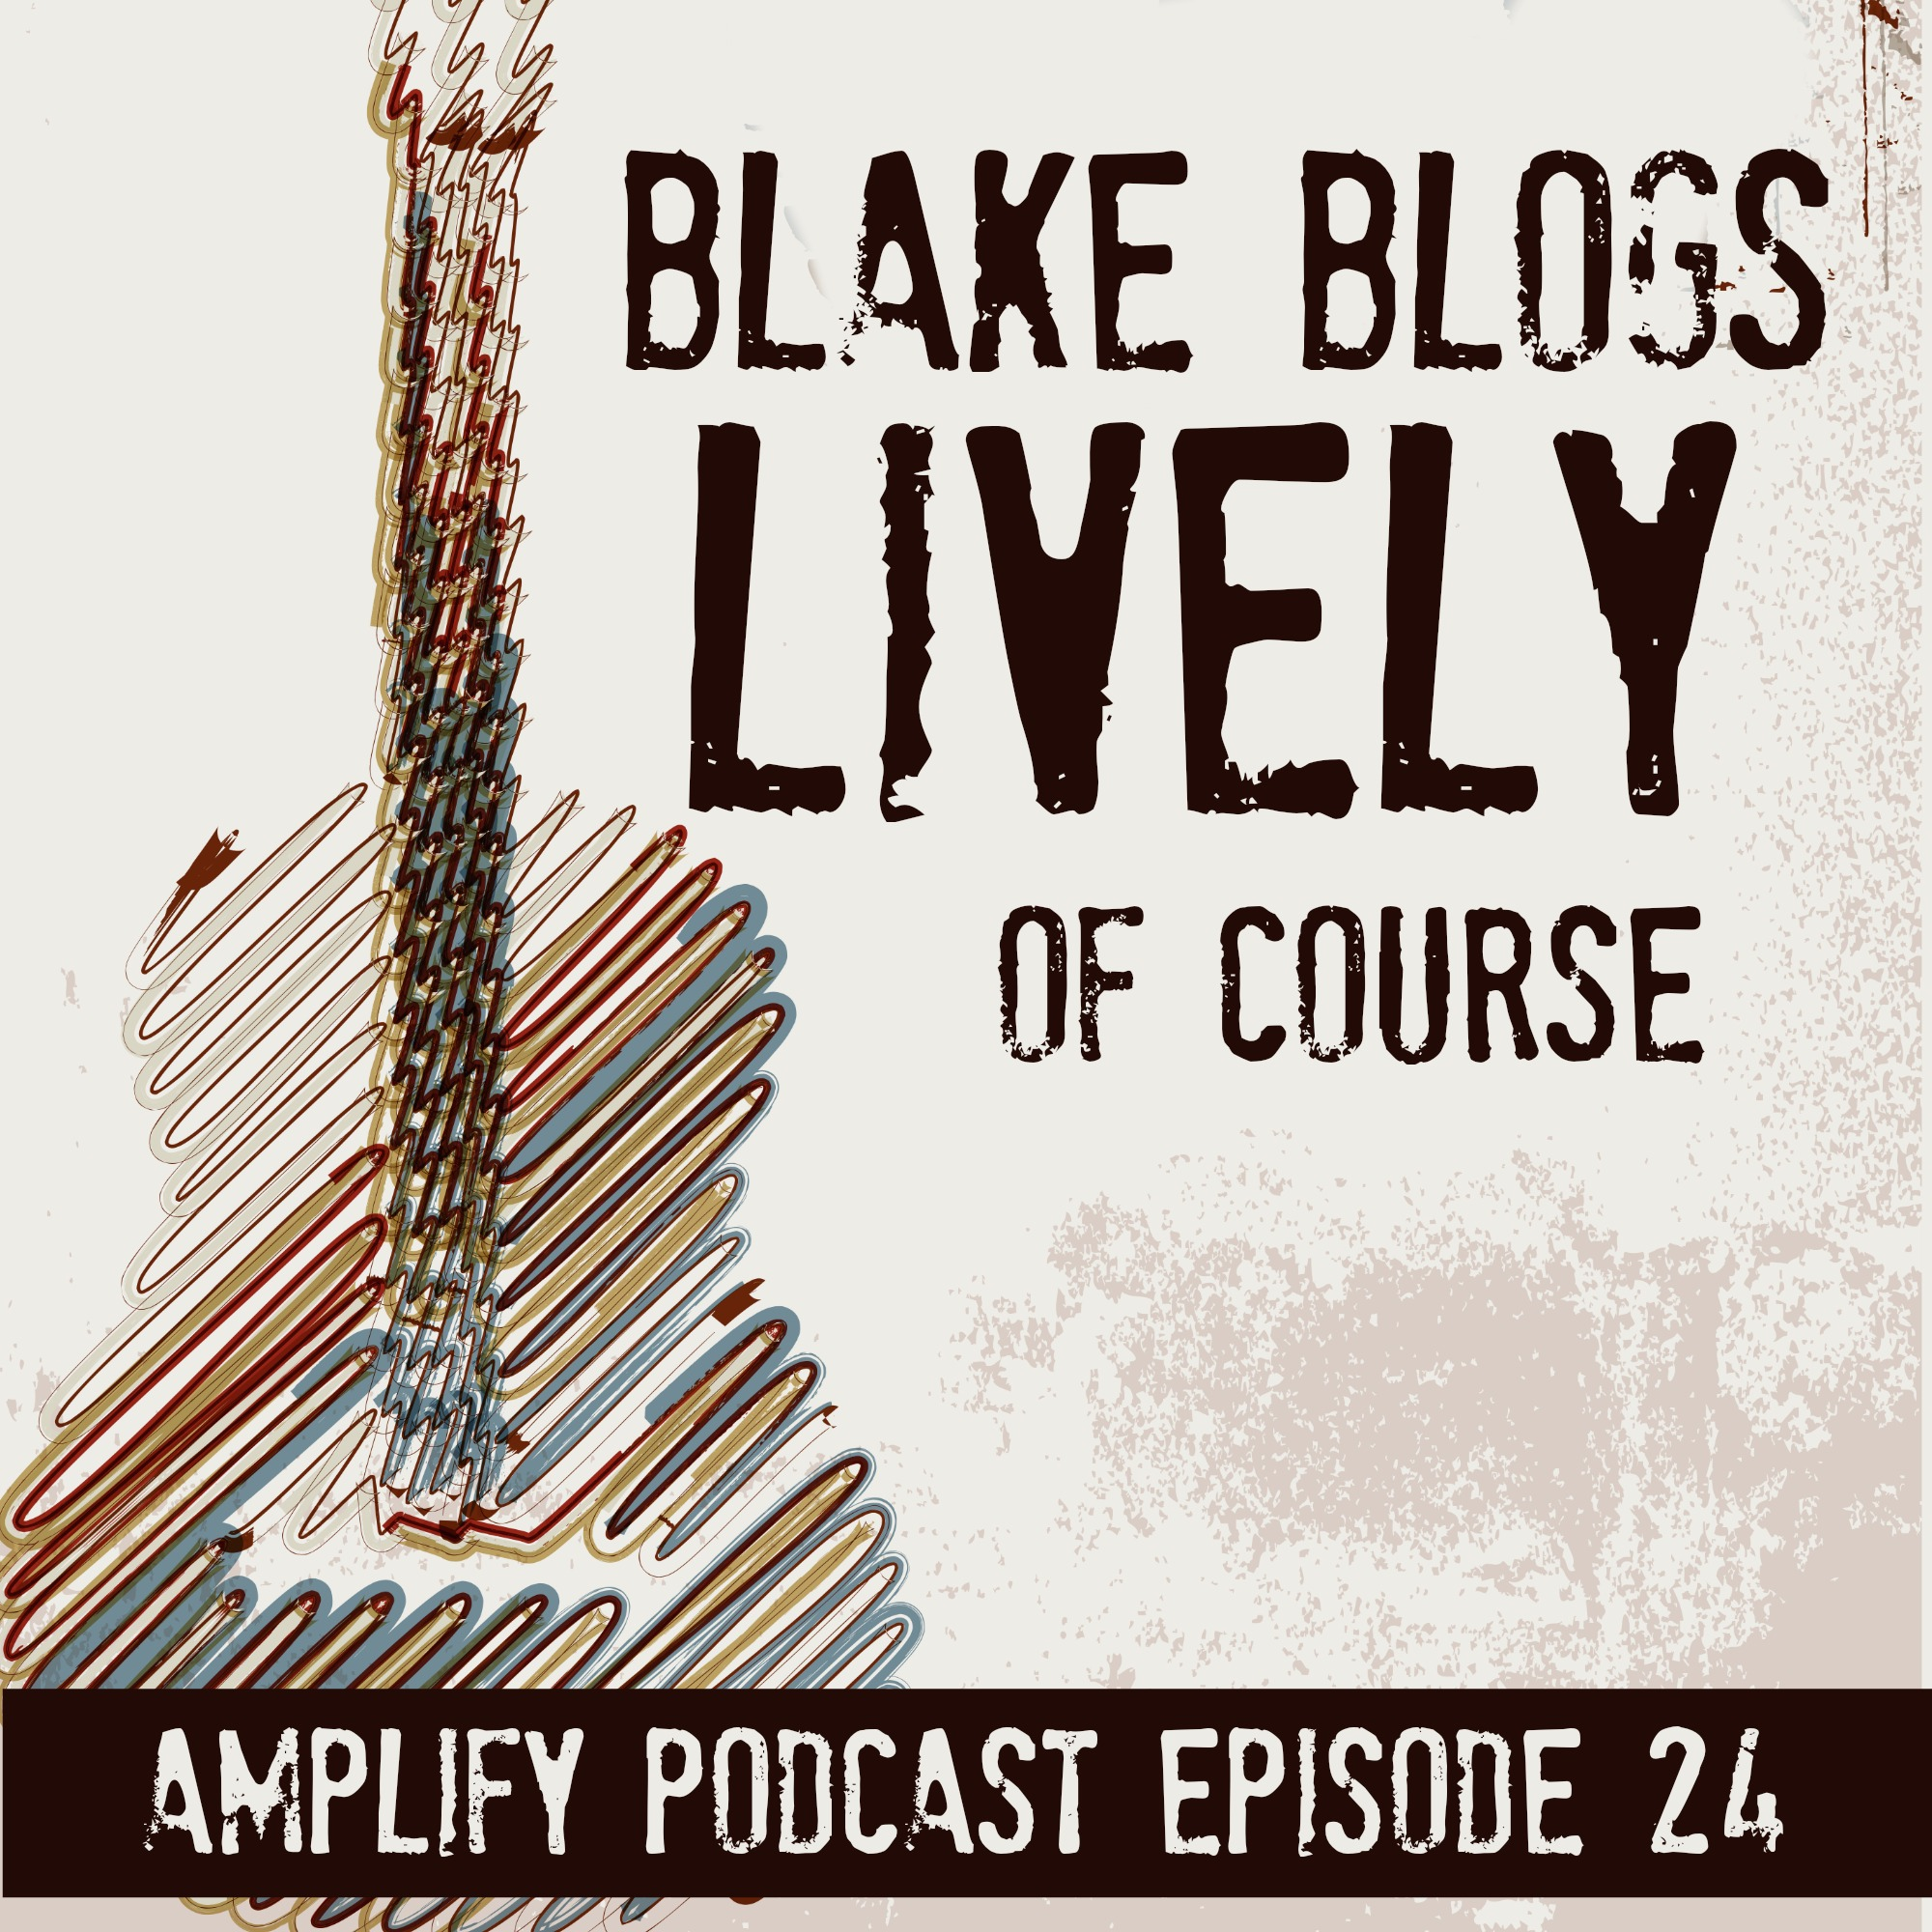 Blake Blogs Lively, of course.